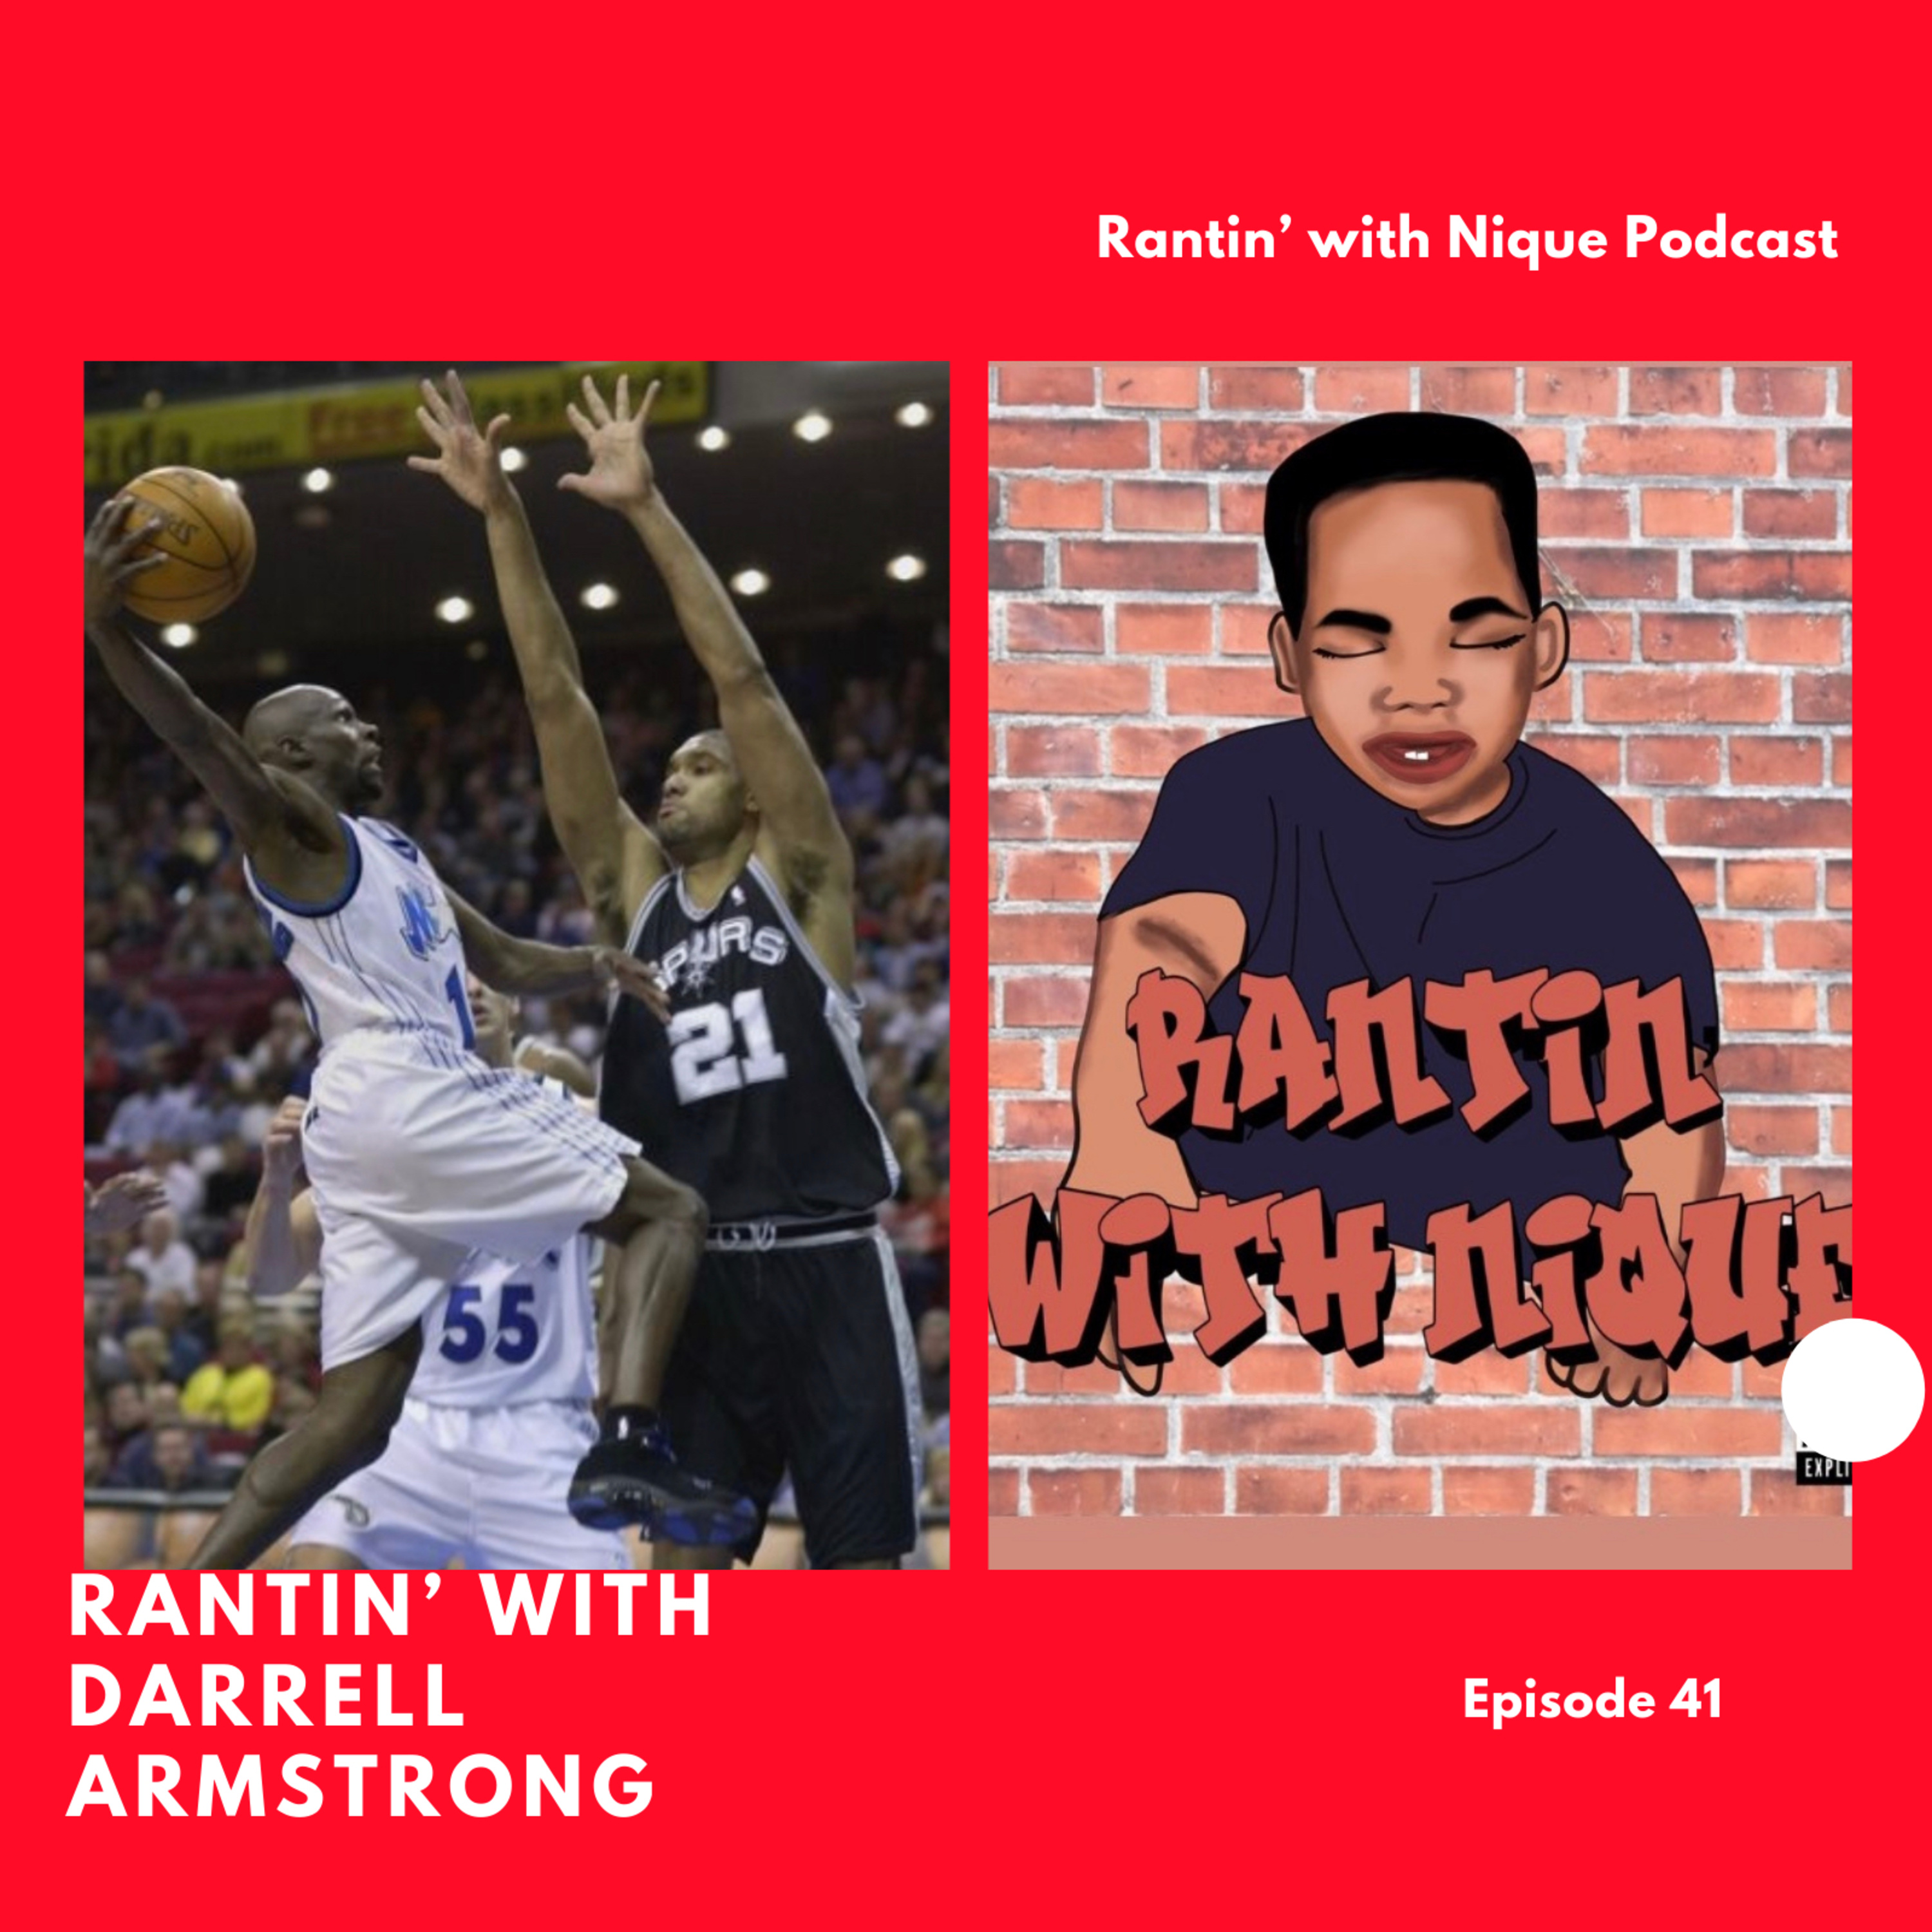 Rantin' with Darrell Armstrong